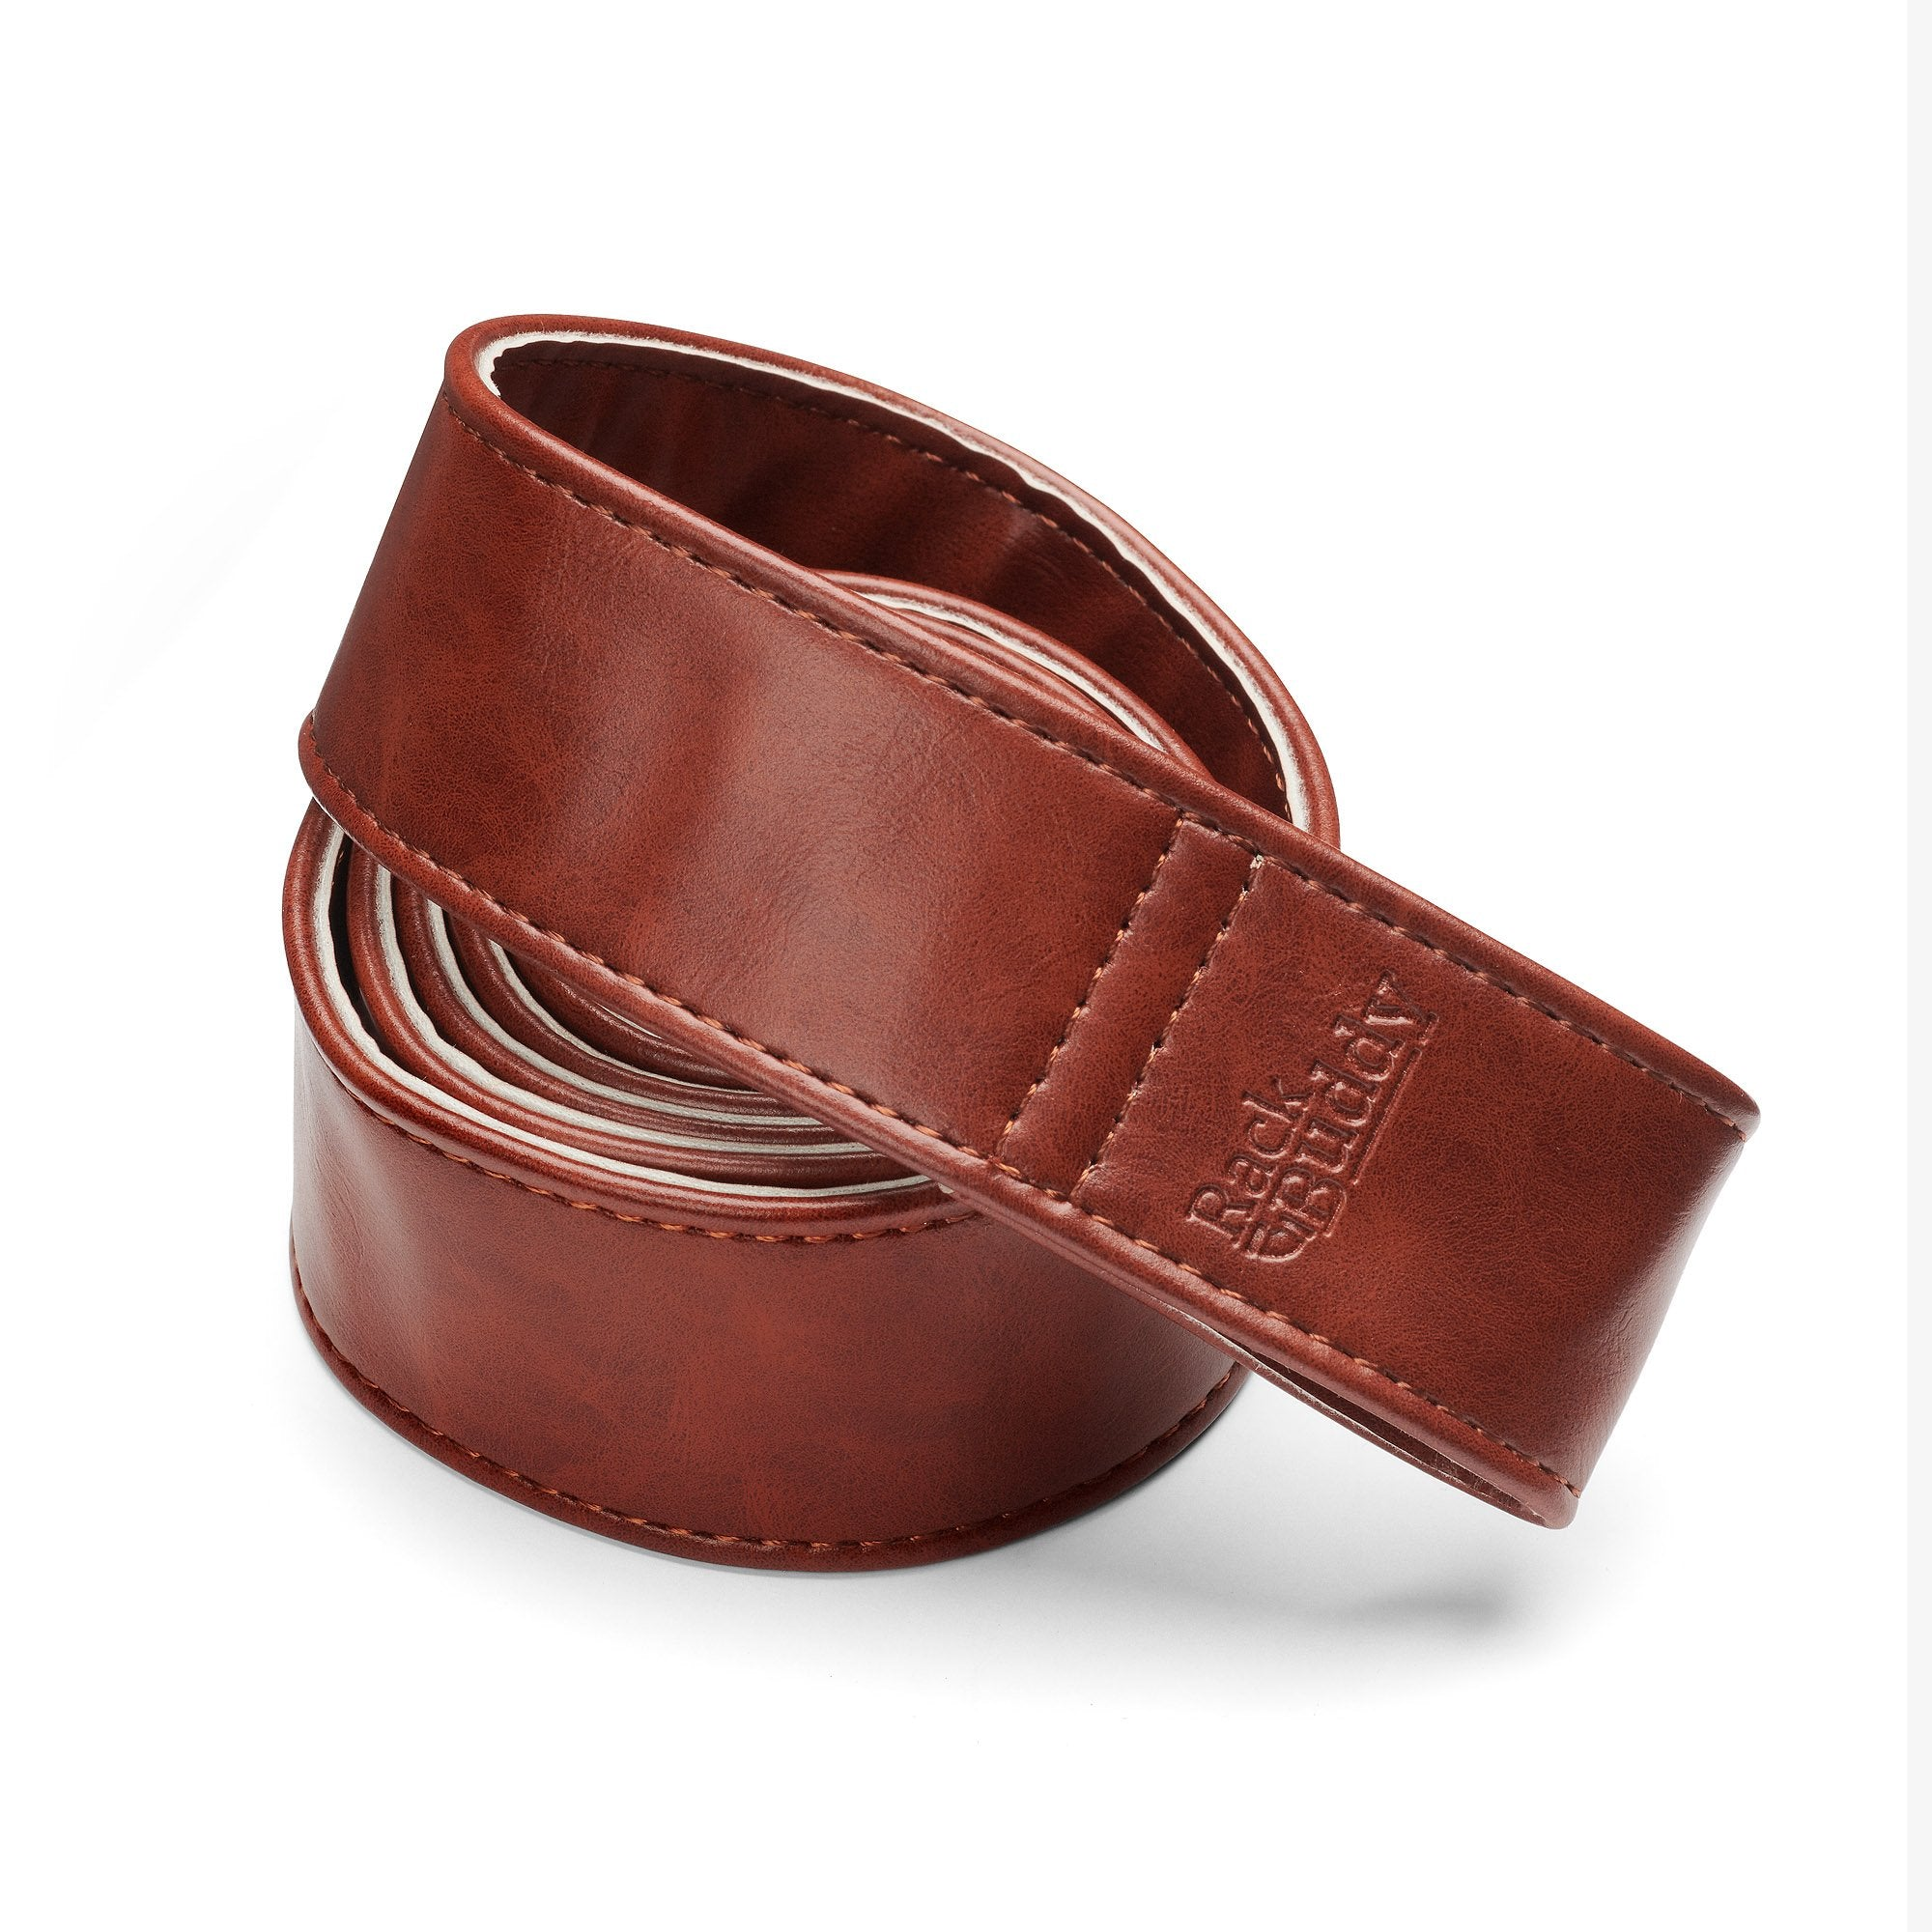 Leatherish - Dark Brown PU-leather straps